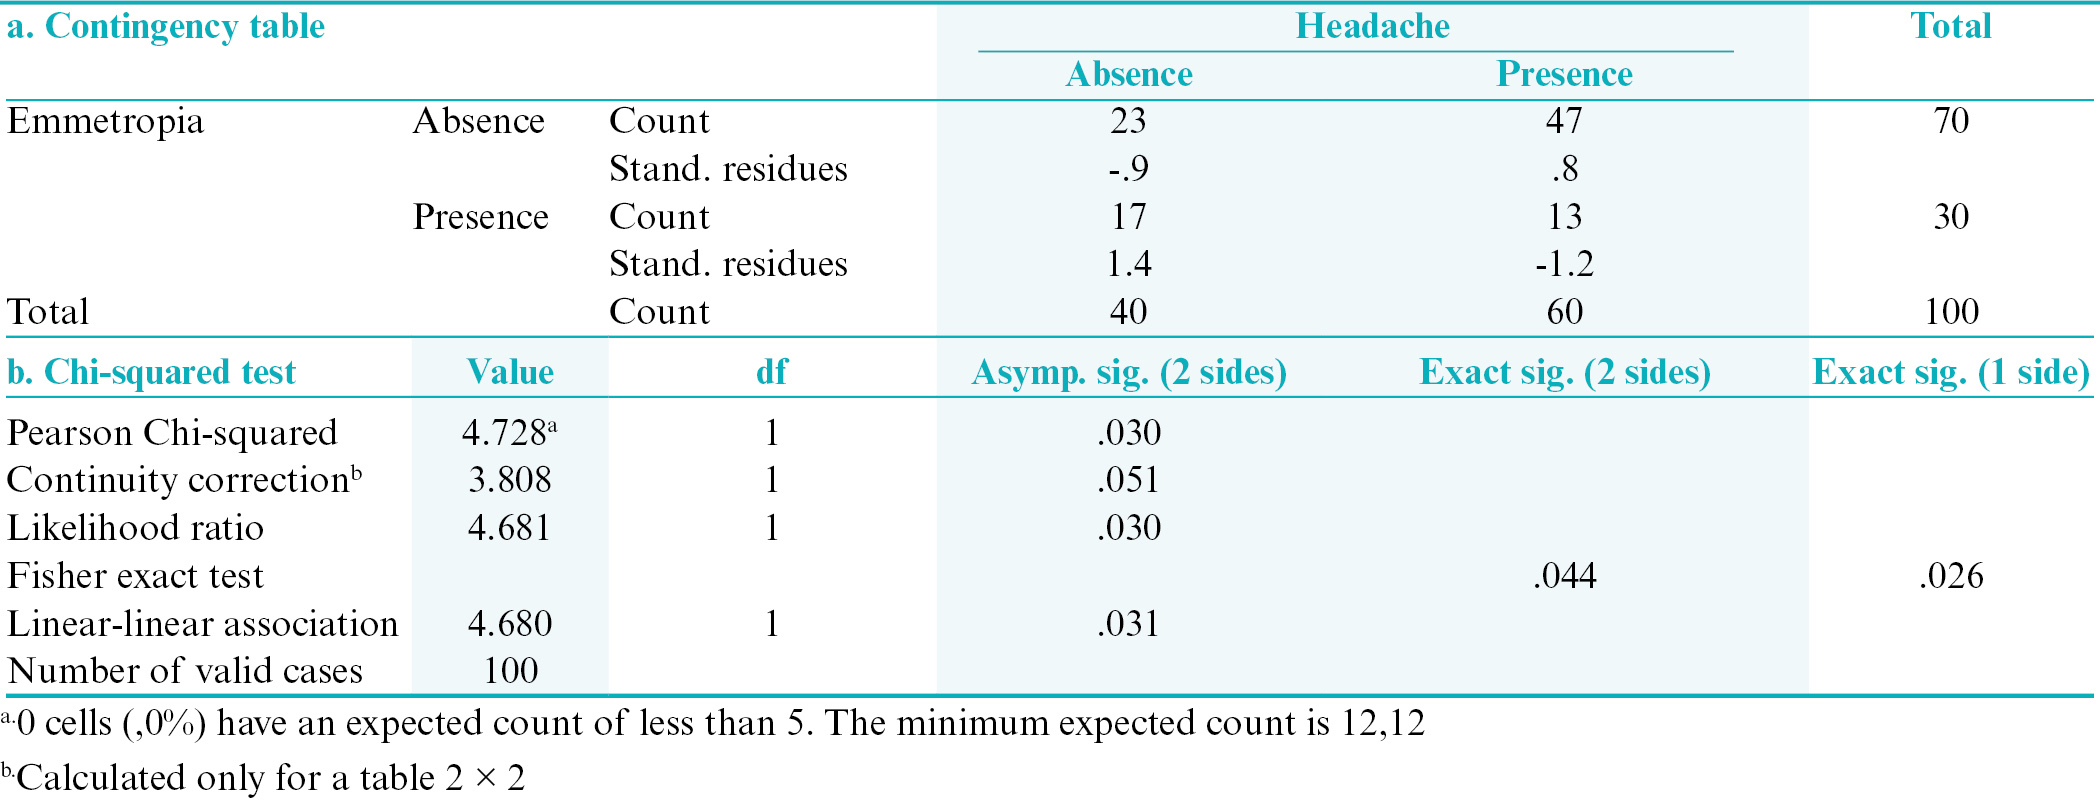 Table 2: Association between headache and emmetropia. (a) Contingency table; (b) Chi-squared test